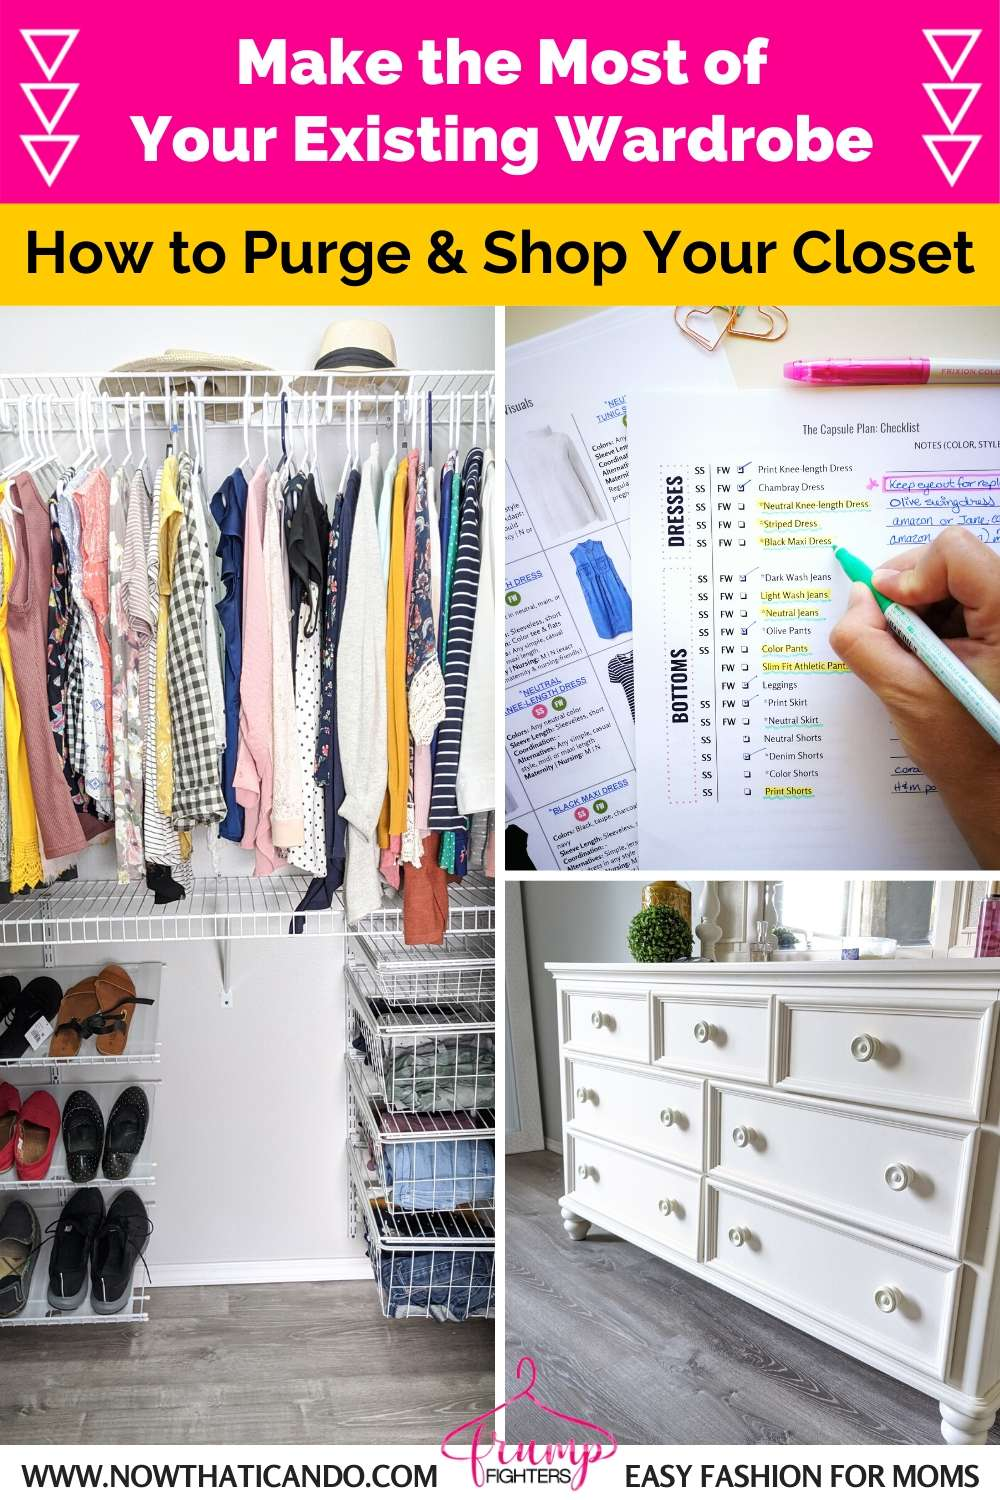 How to make the most of your existing wardrobe - Purge and shop your closet - free shopping list wardrobe overhaul essentials